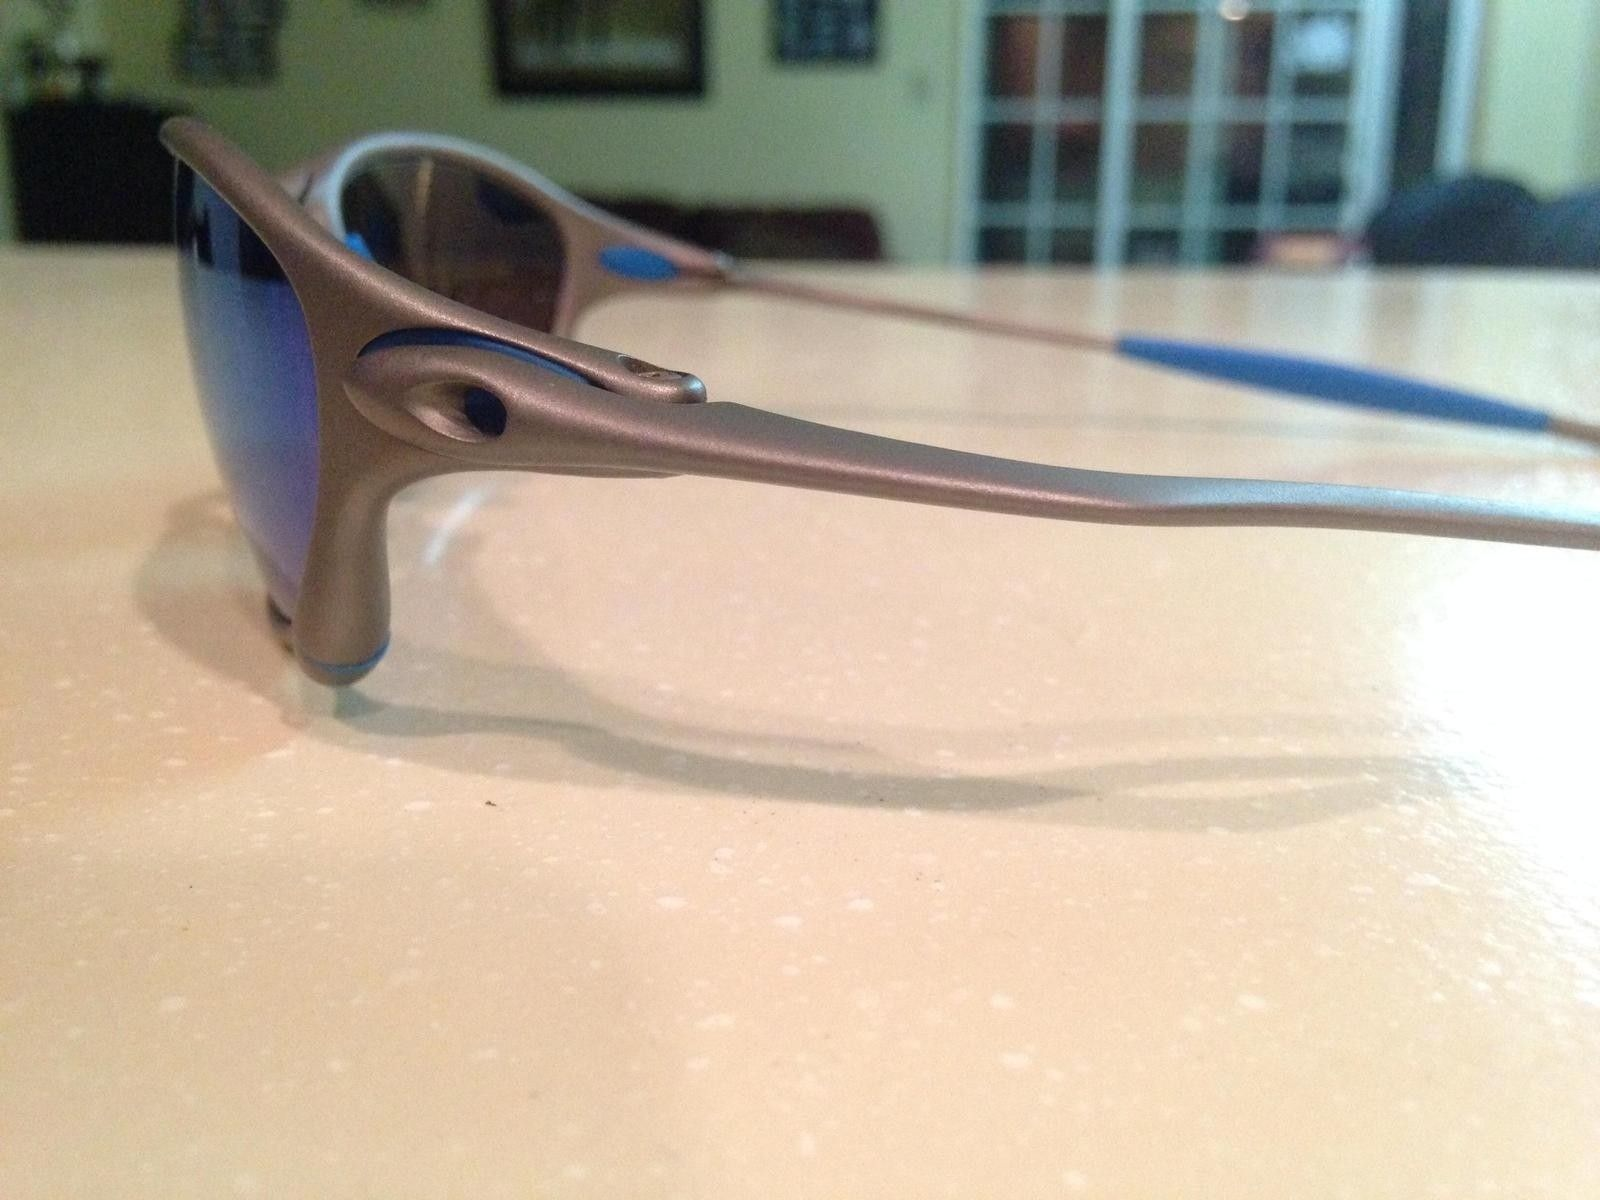 Oakley XX Metal (original Owner) - rhDpP12.jpg